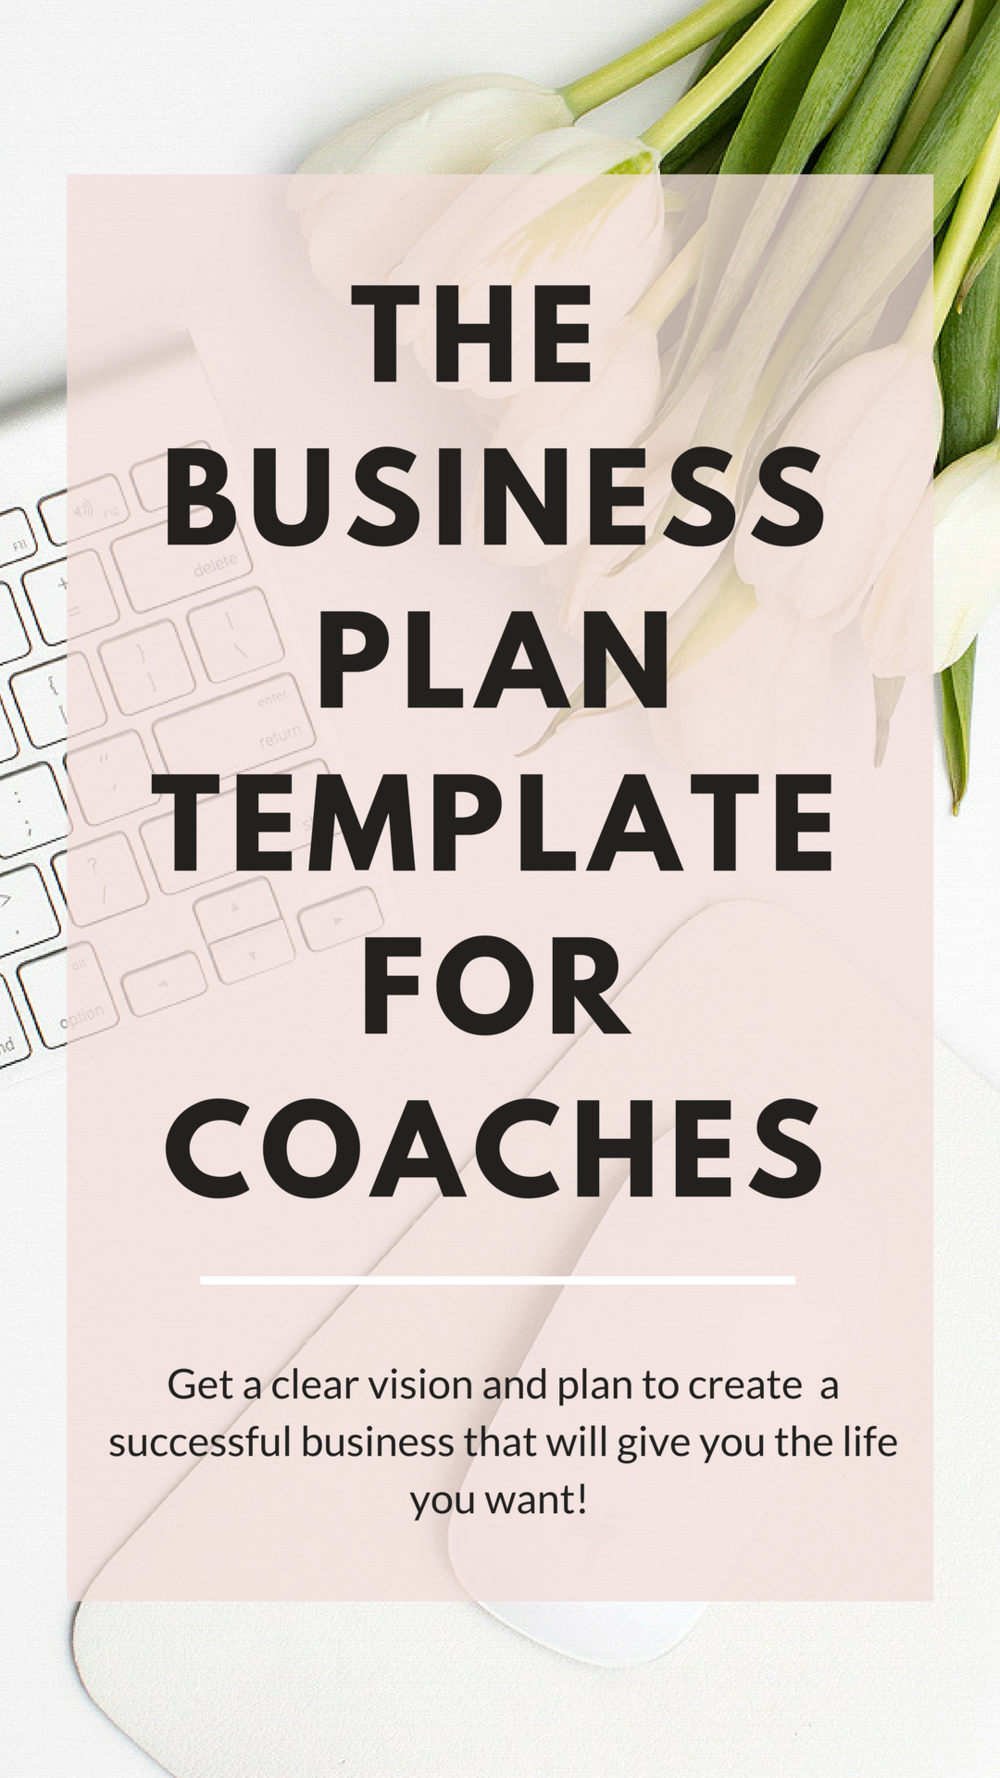 The-business-plan-template-for-coaches.png